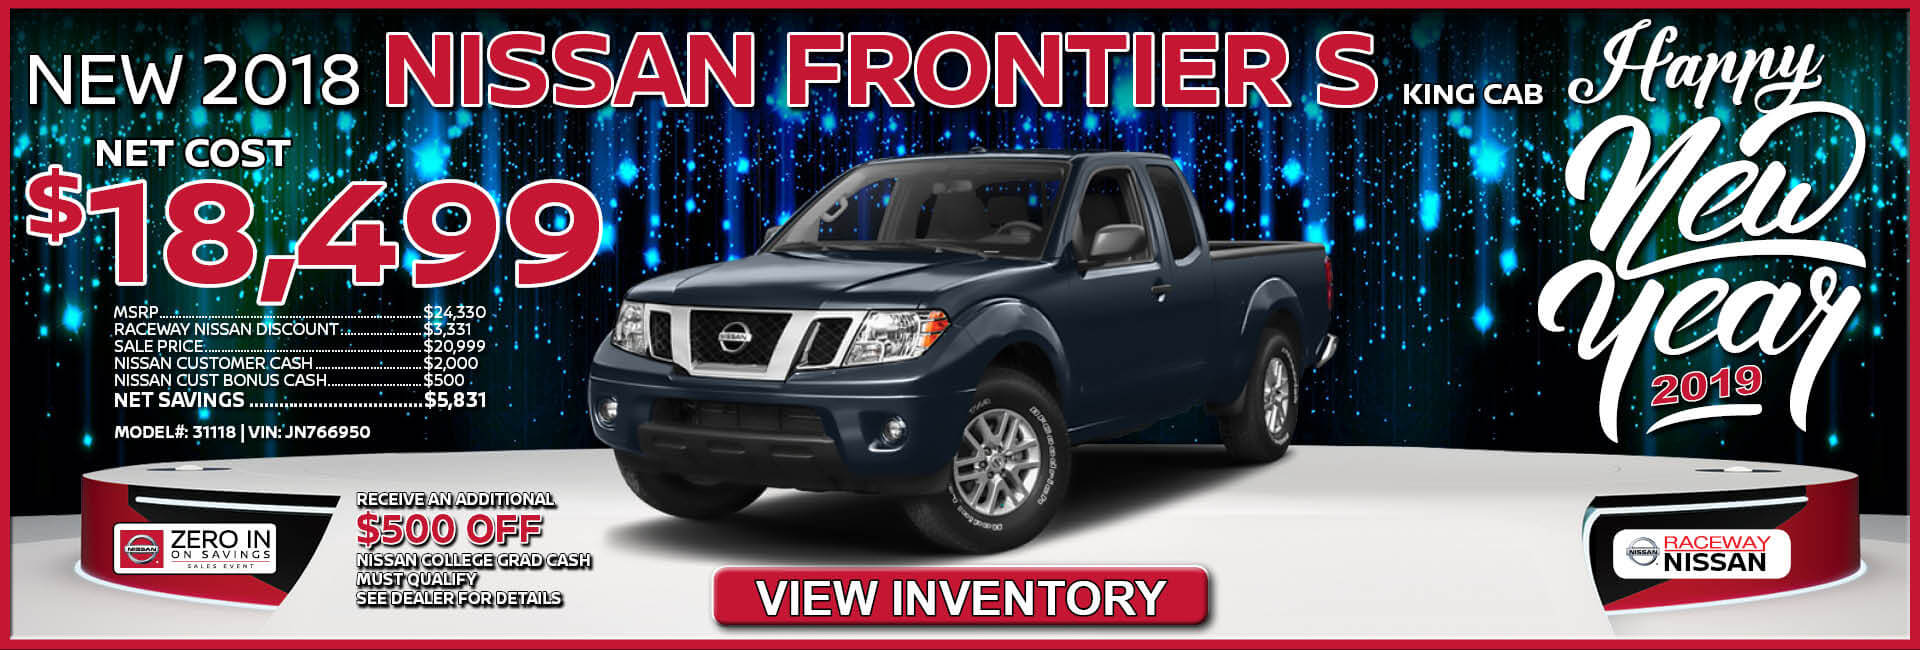 Nissan Frontier $18,499 Purchase